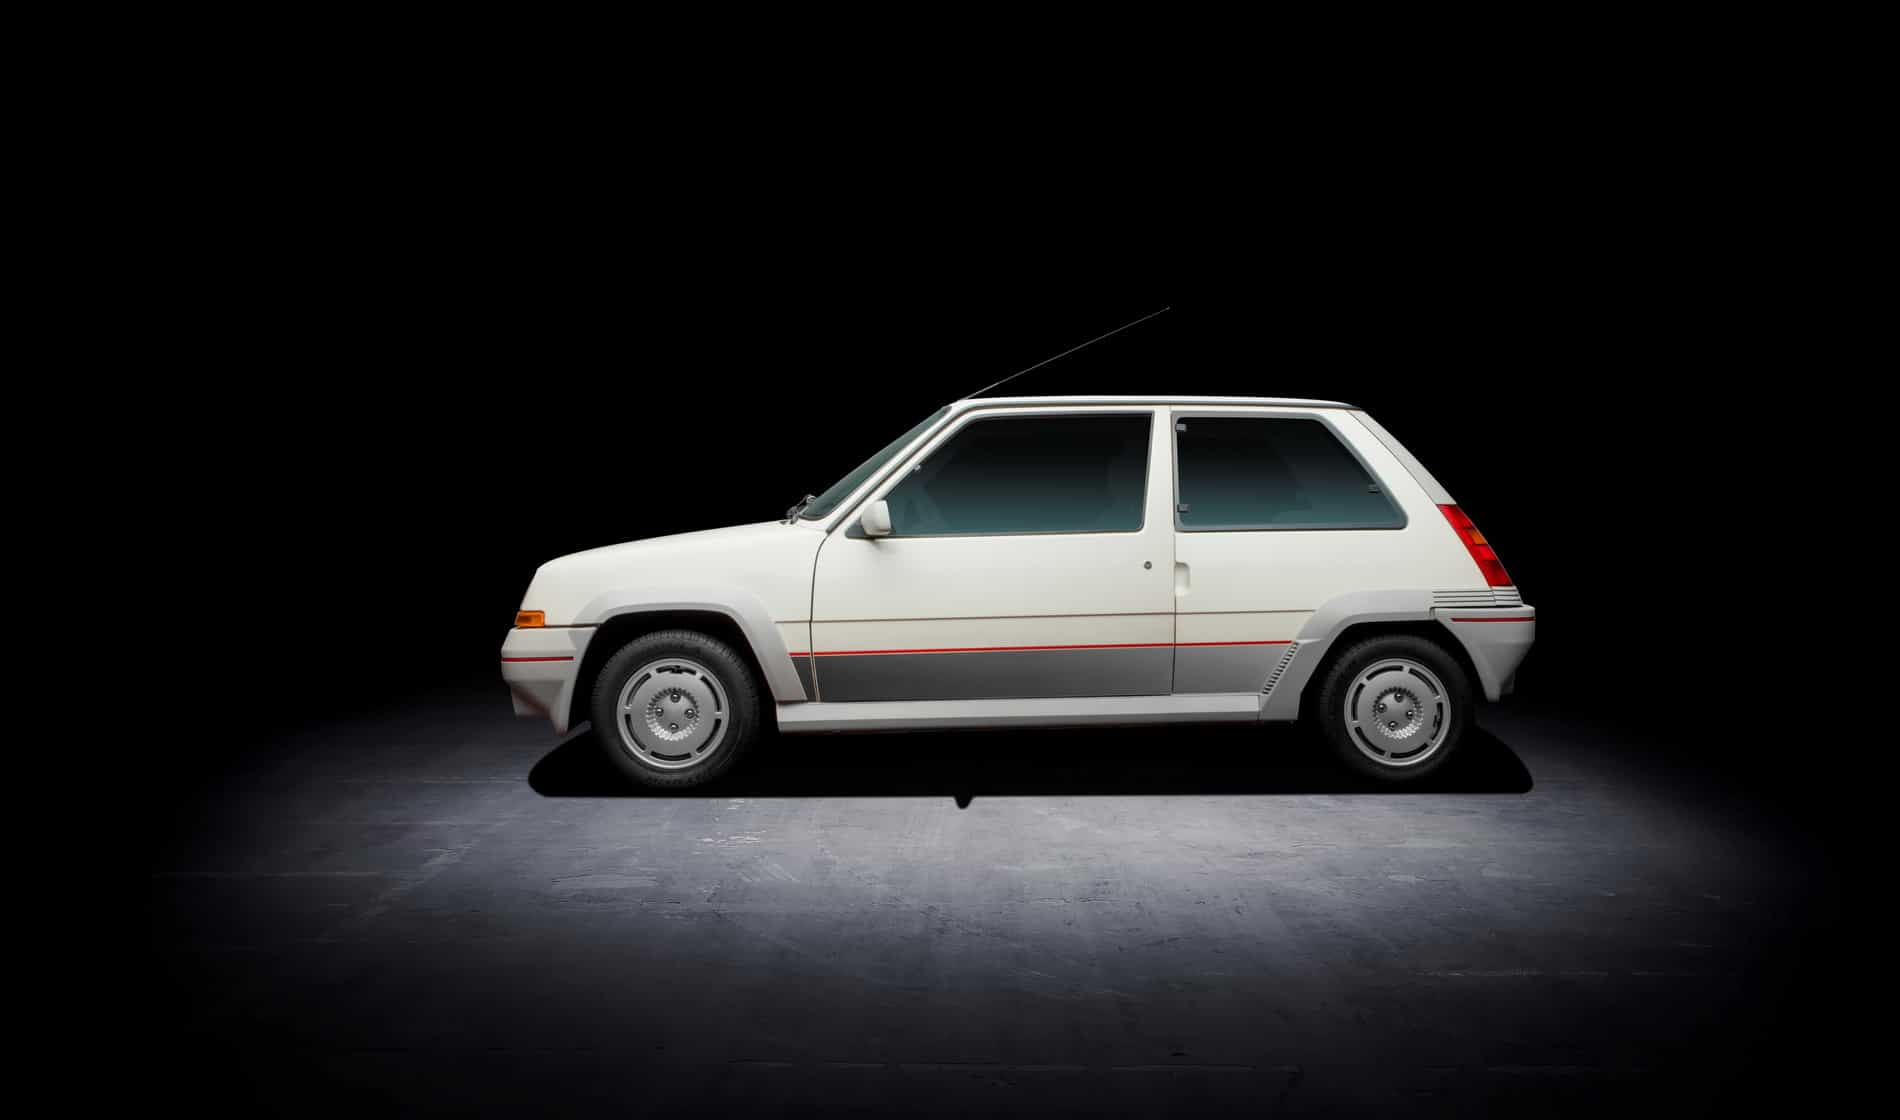 1985 – Renault 5 GT Turbo